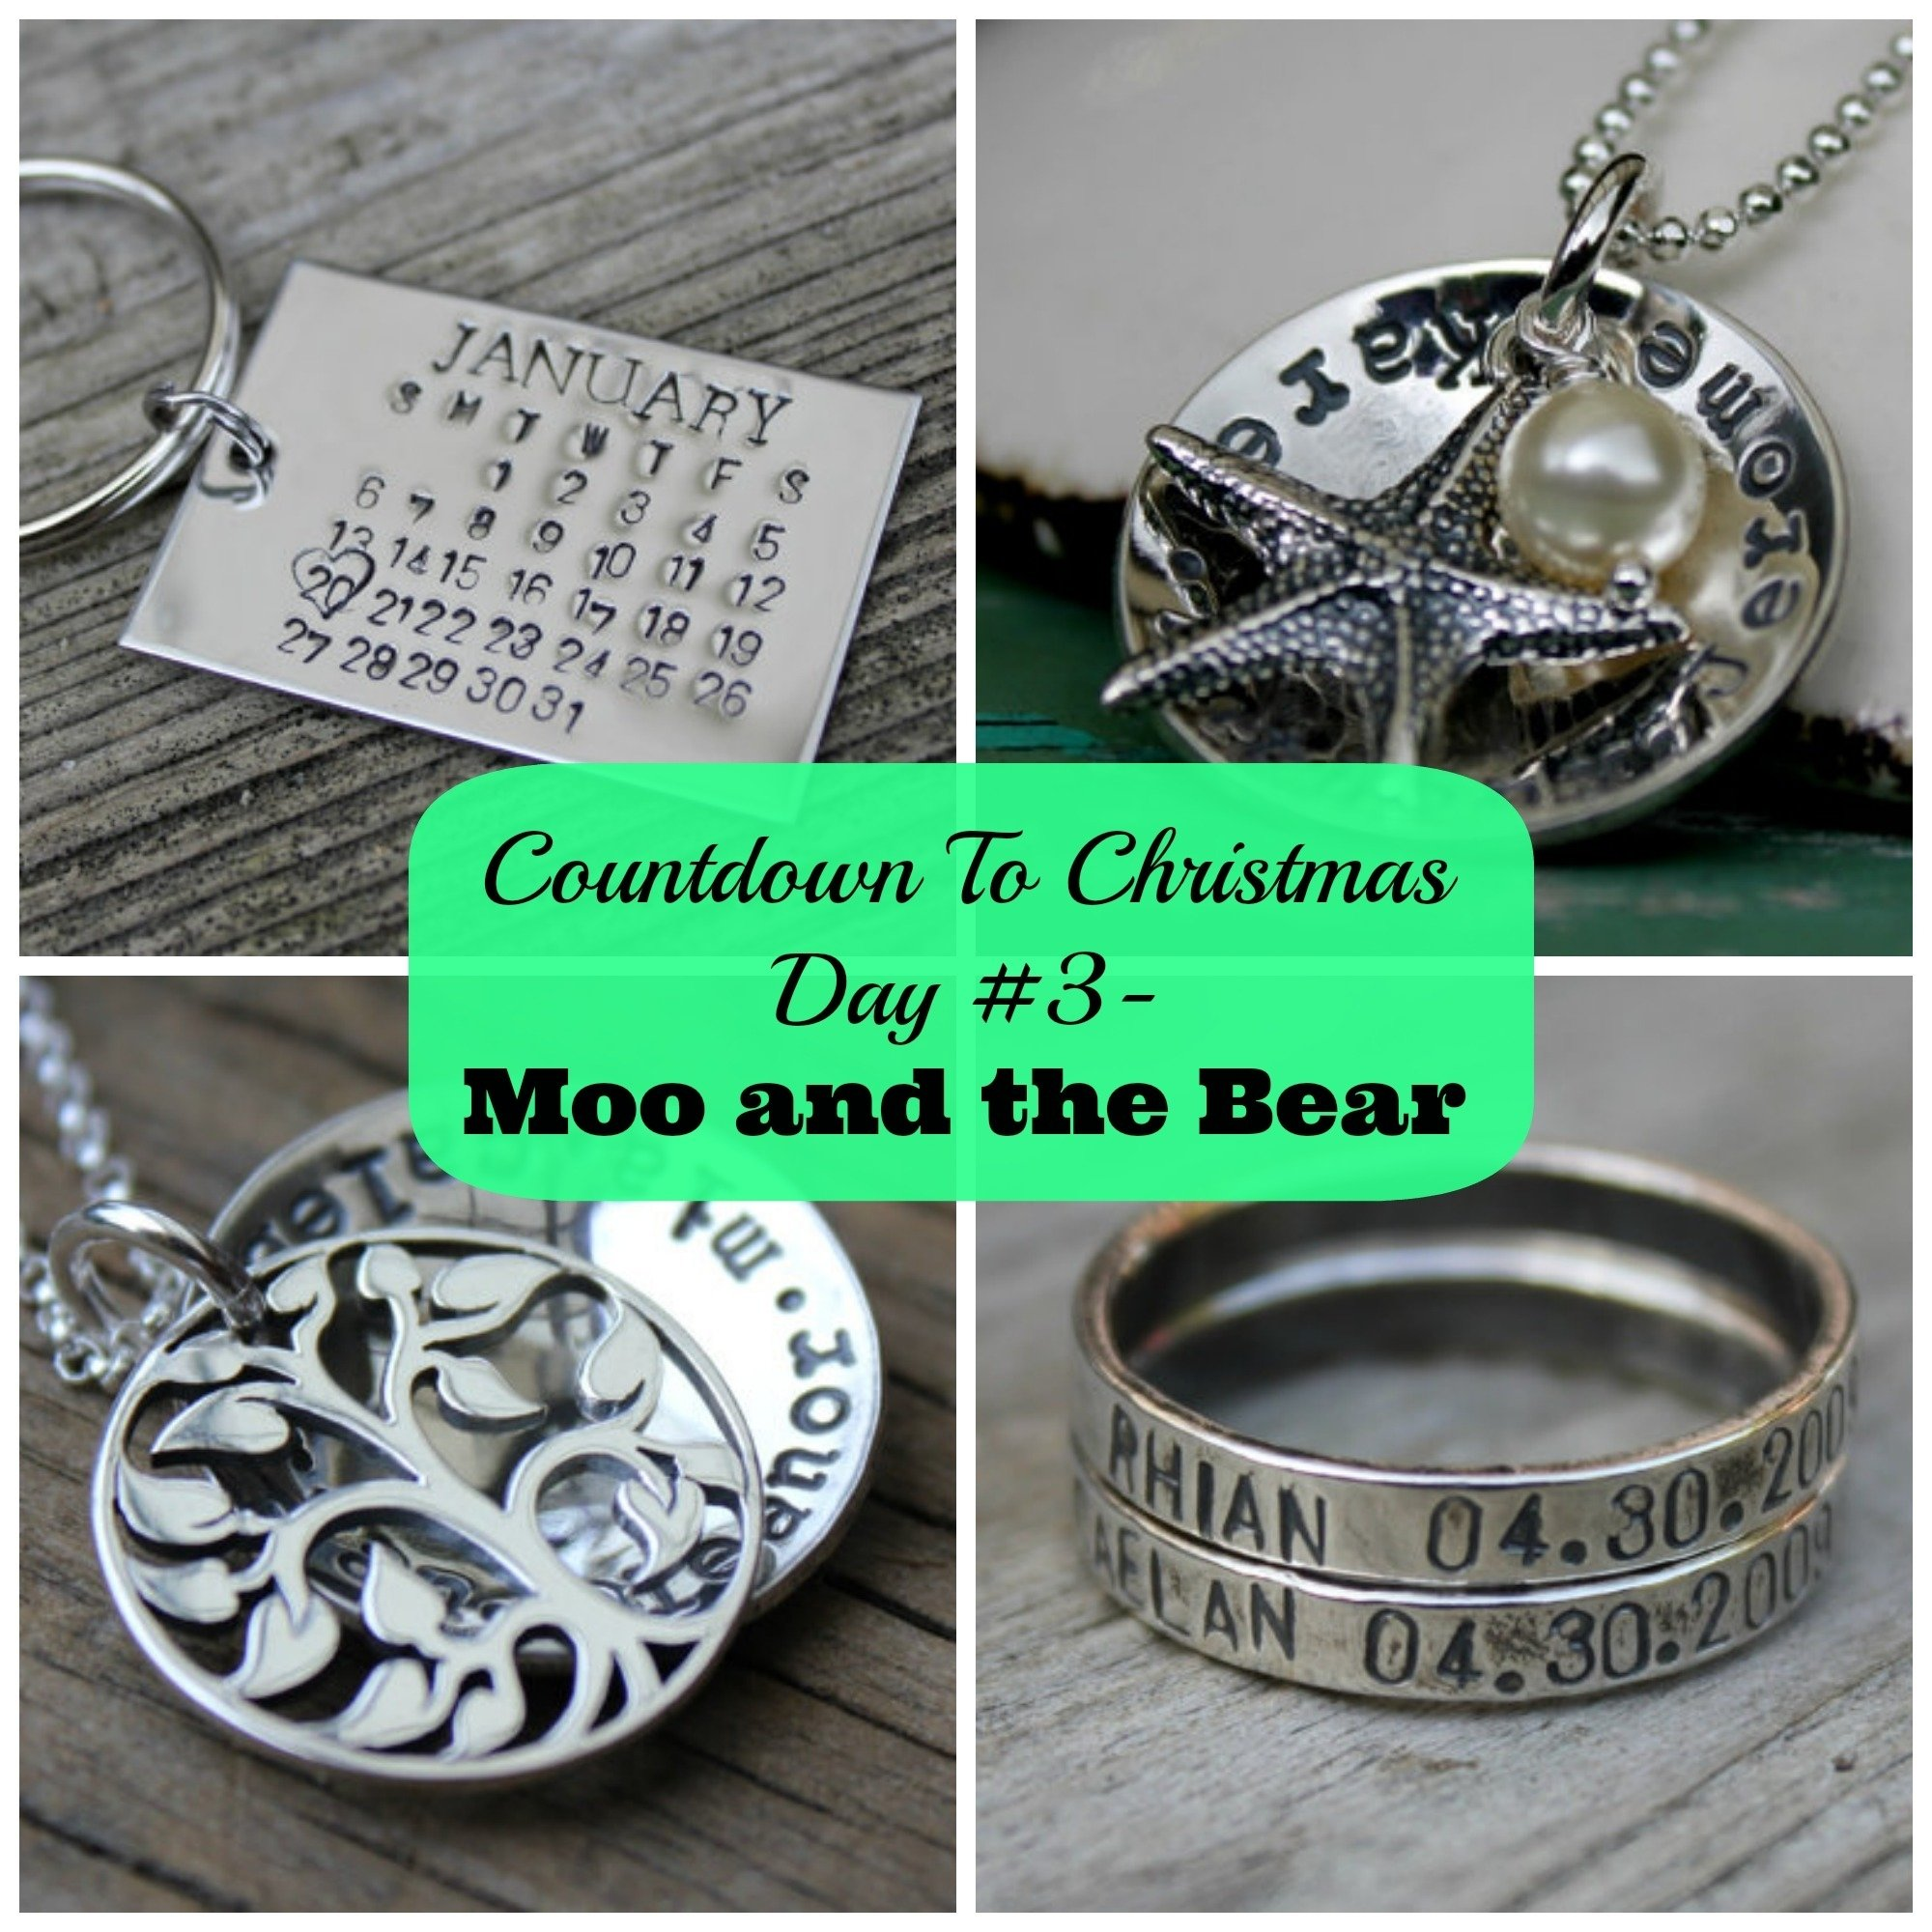 10 Best Creative Christmas Ideas For Boyfriend countdown to christmas day 3 moo and the bear gifts for her and 6 2020